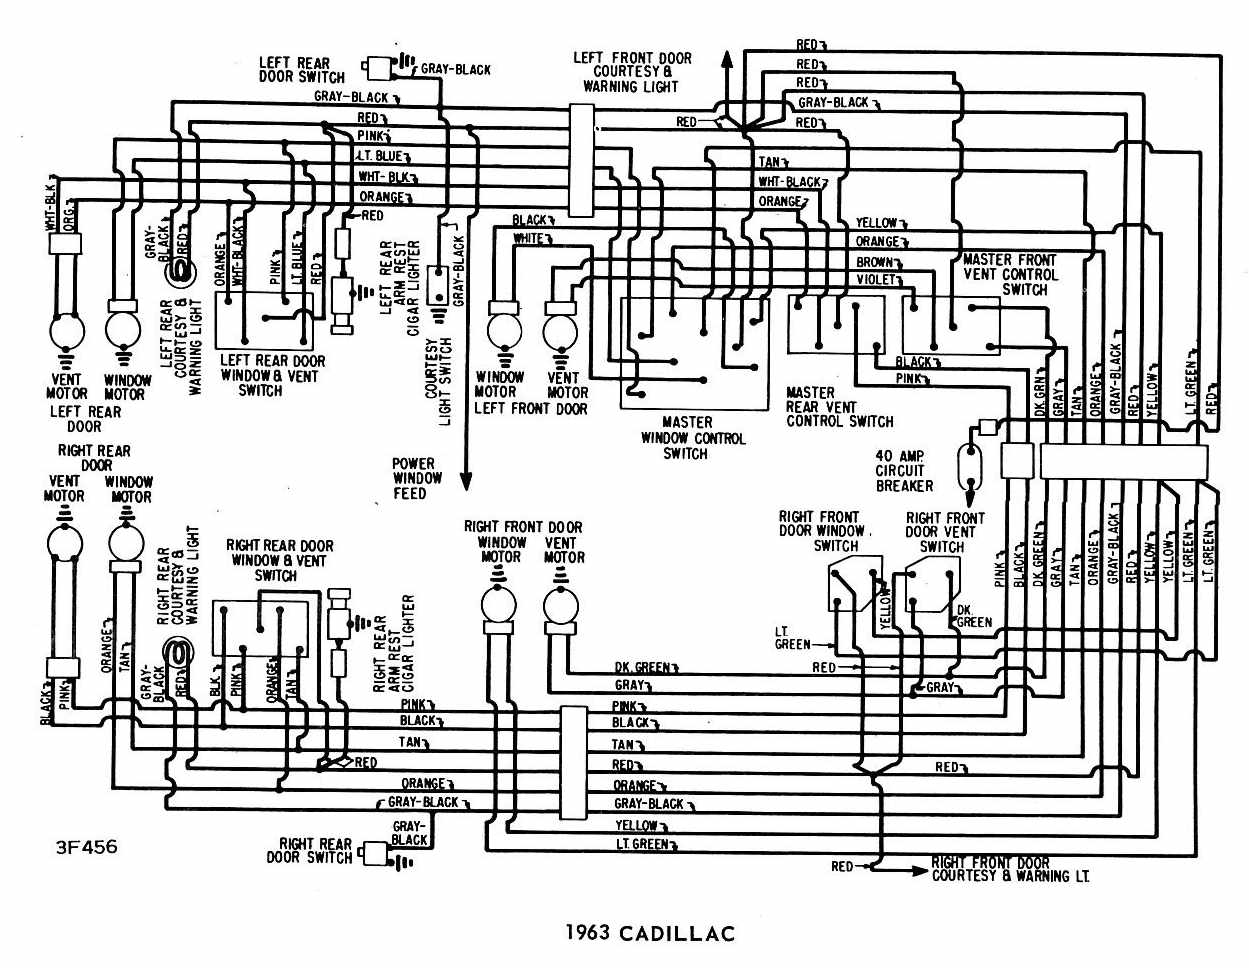 Automotive Electrical Wiring Diagram Pdf Library Symbols Cadillac 1963 Windows For Jaguar Xj6 Free